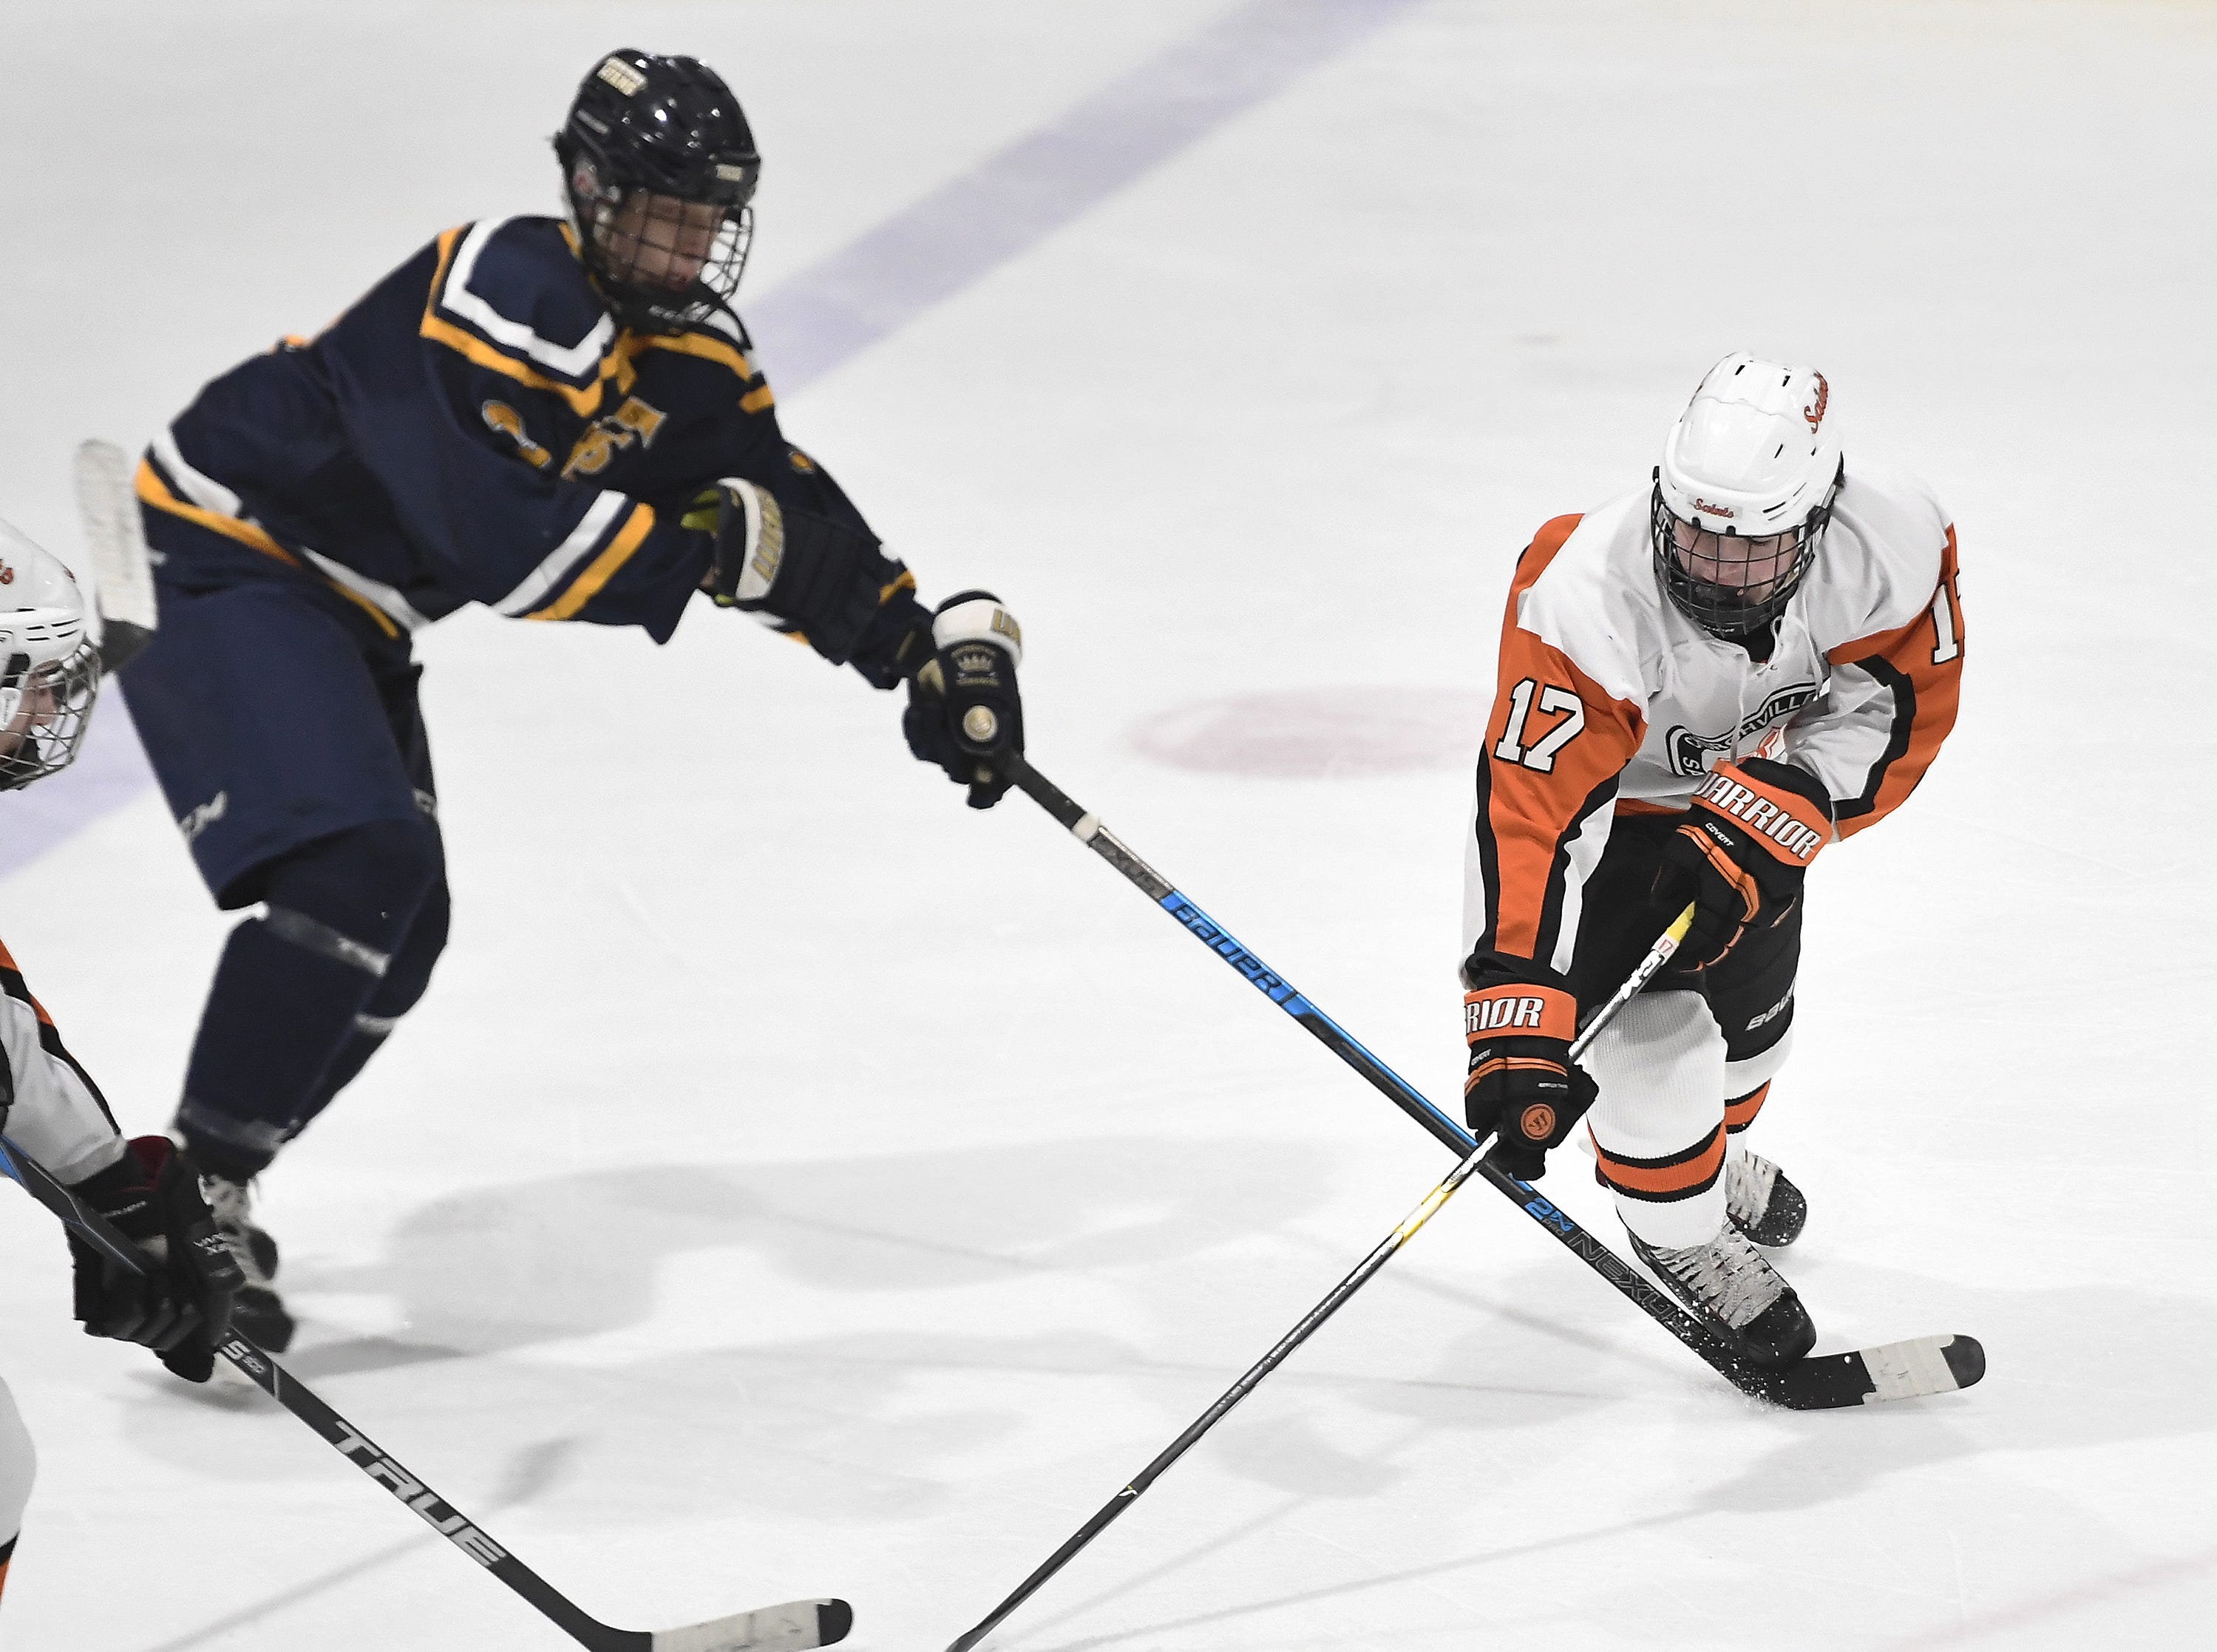 Churchville-Chili's Max Williams, right, is tripped up by Webster Thomas' Teagan Spang during a regular season game played at the Scottsville Ice Arena, Tuesday, Jan. 22, 2019. Webster Thomas beat Chuchville-Chili 4-1.